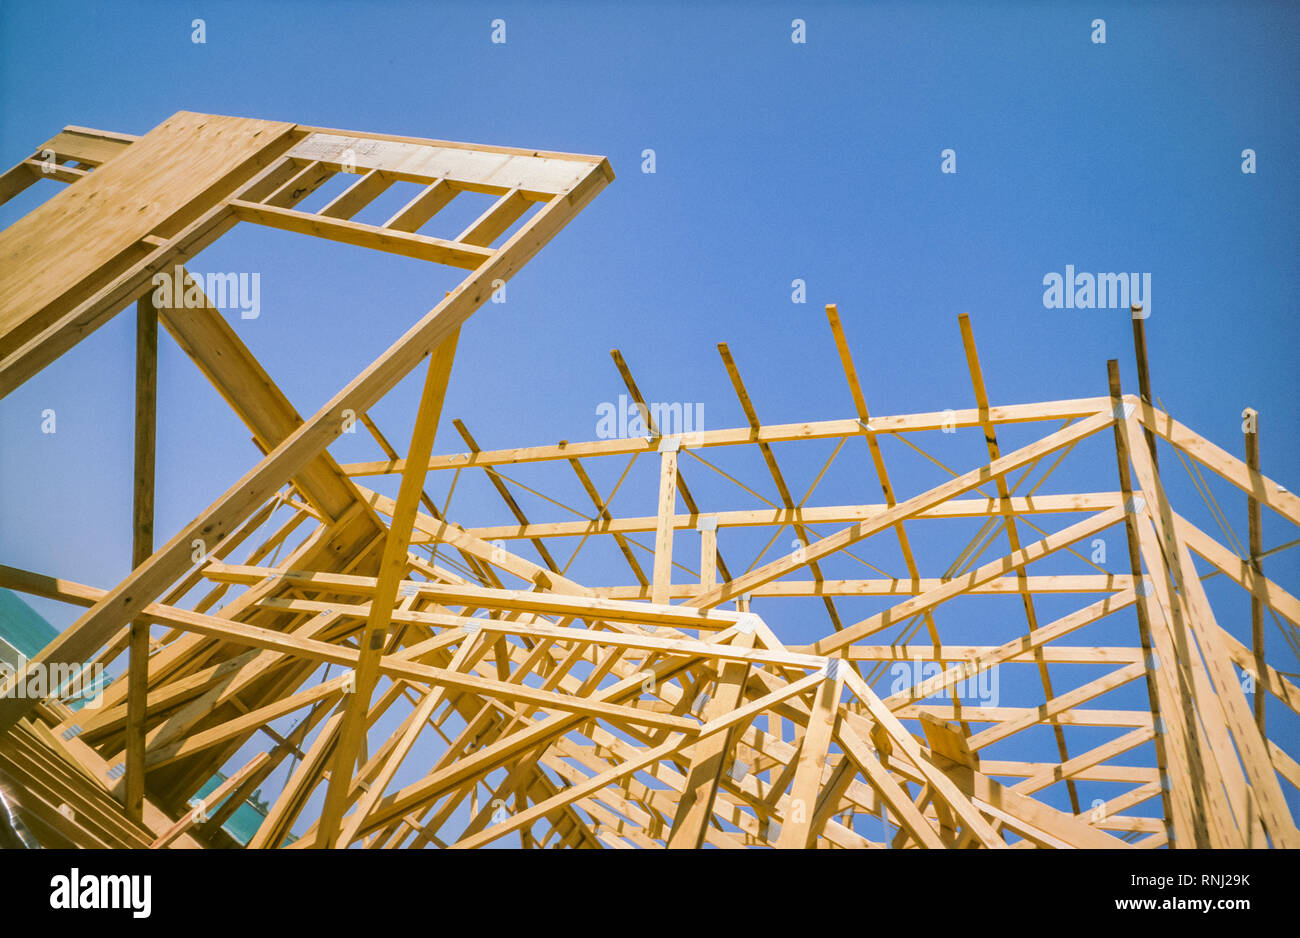 Incomplete building construction, roof detail - Stock Image